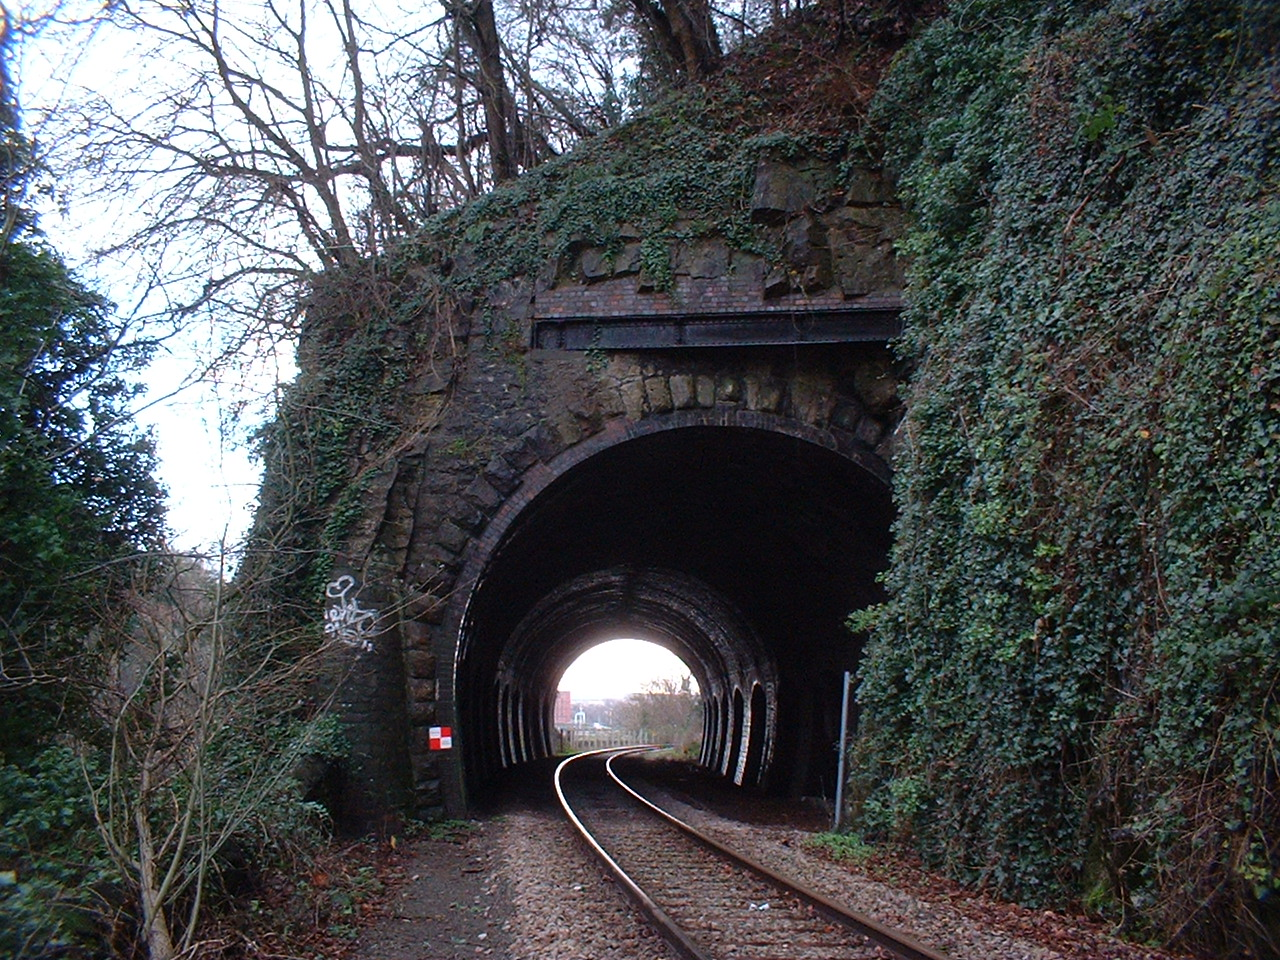 avon_gorge_railway_tunnel_1_n.jpg